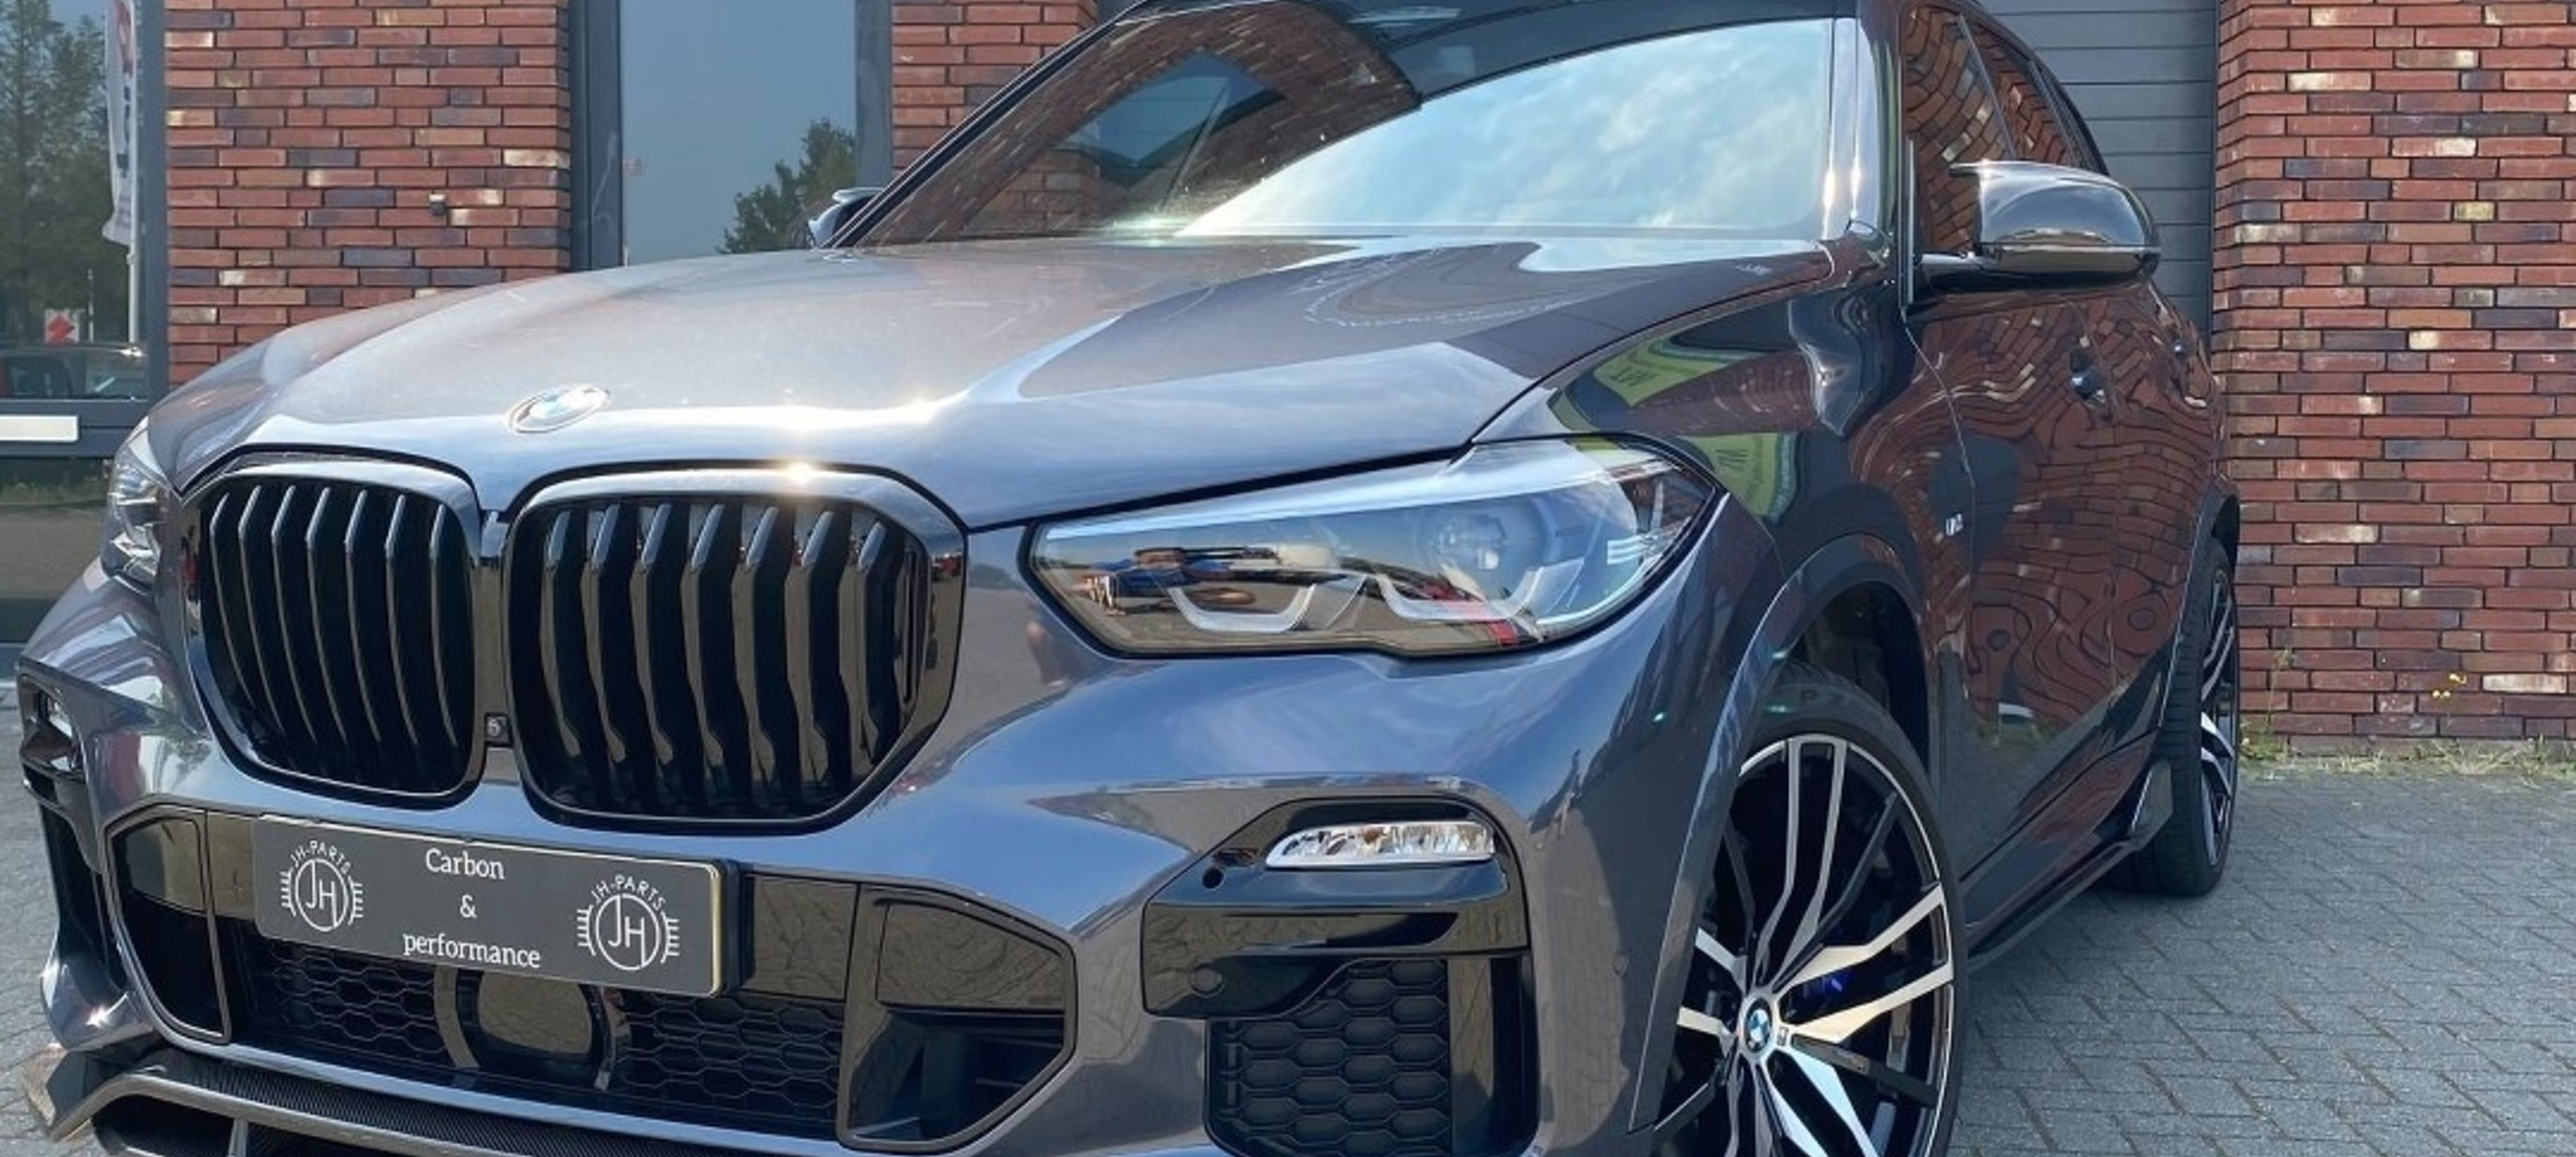 BMW G05 X5 Parts fitted